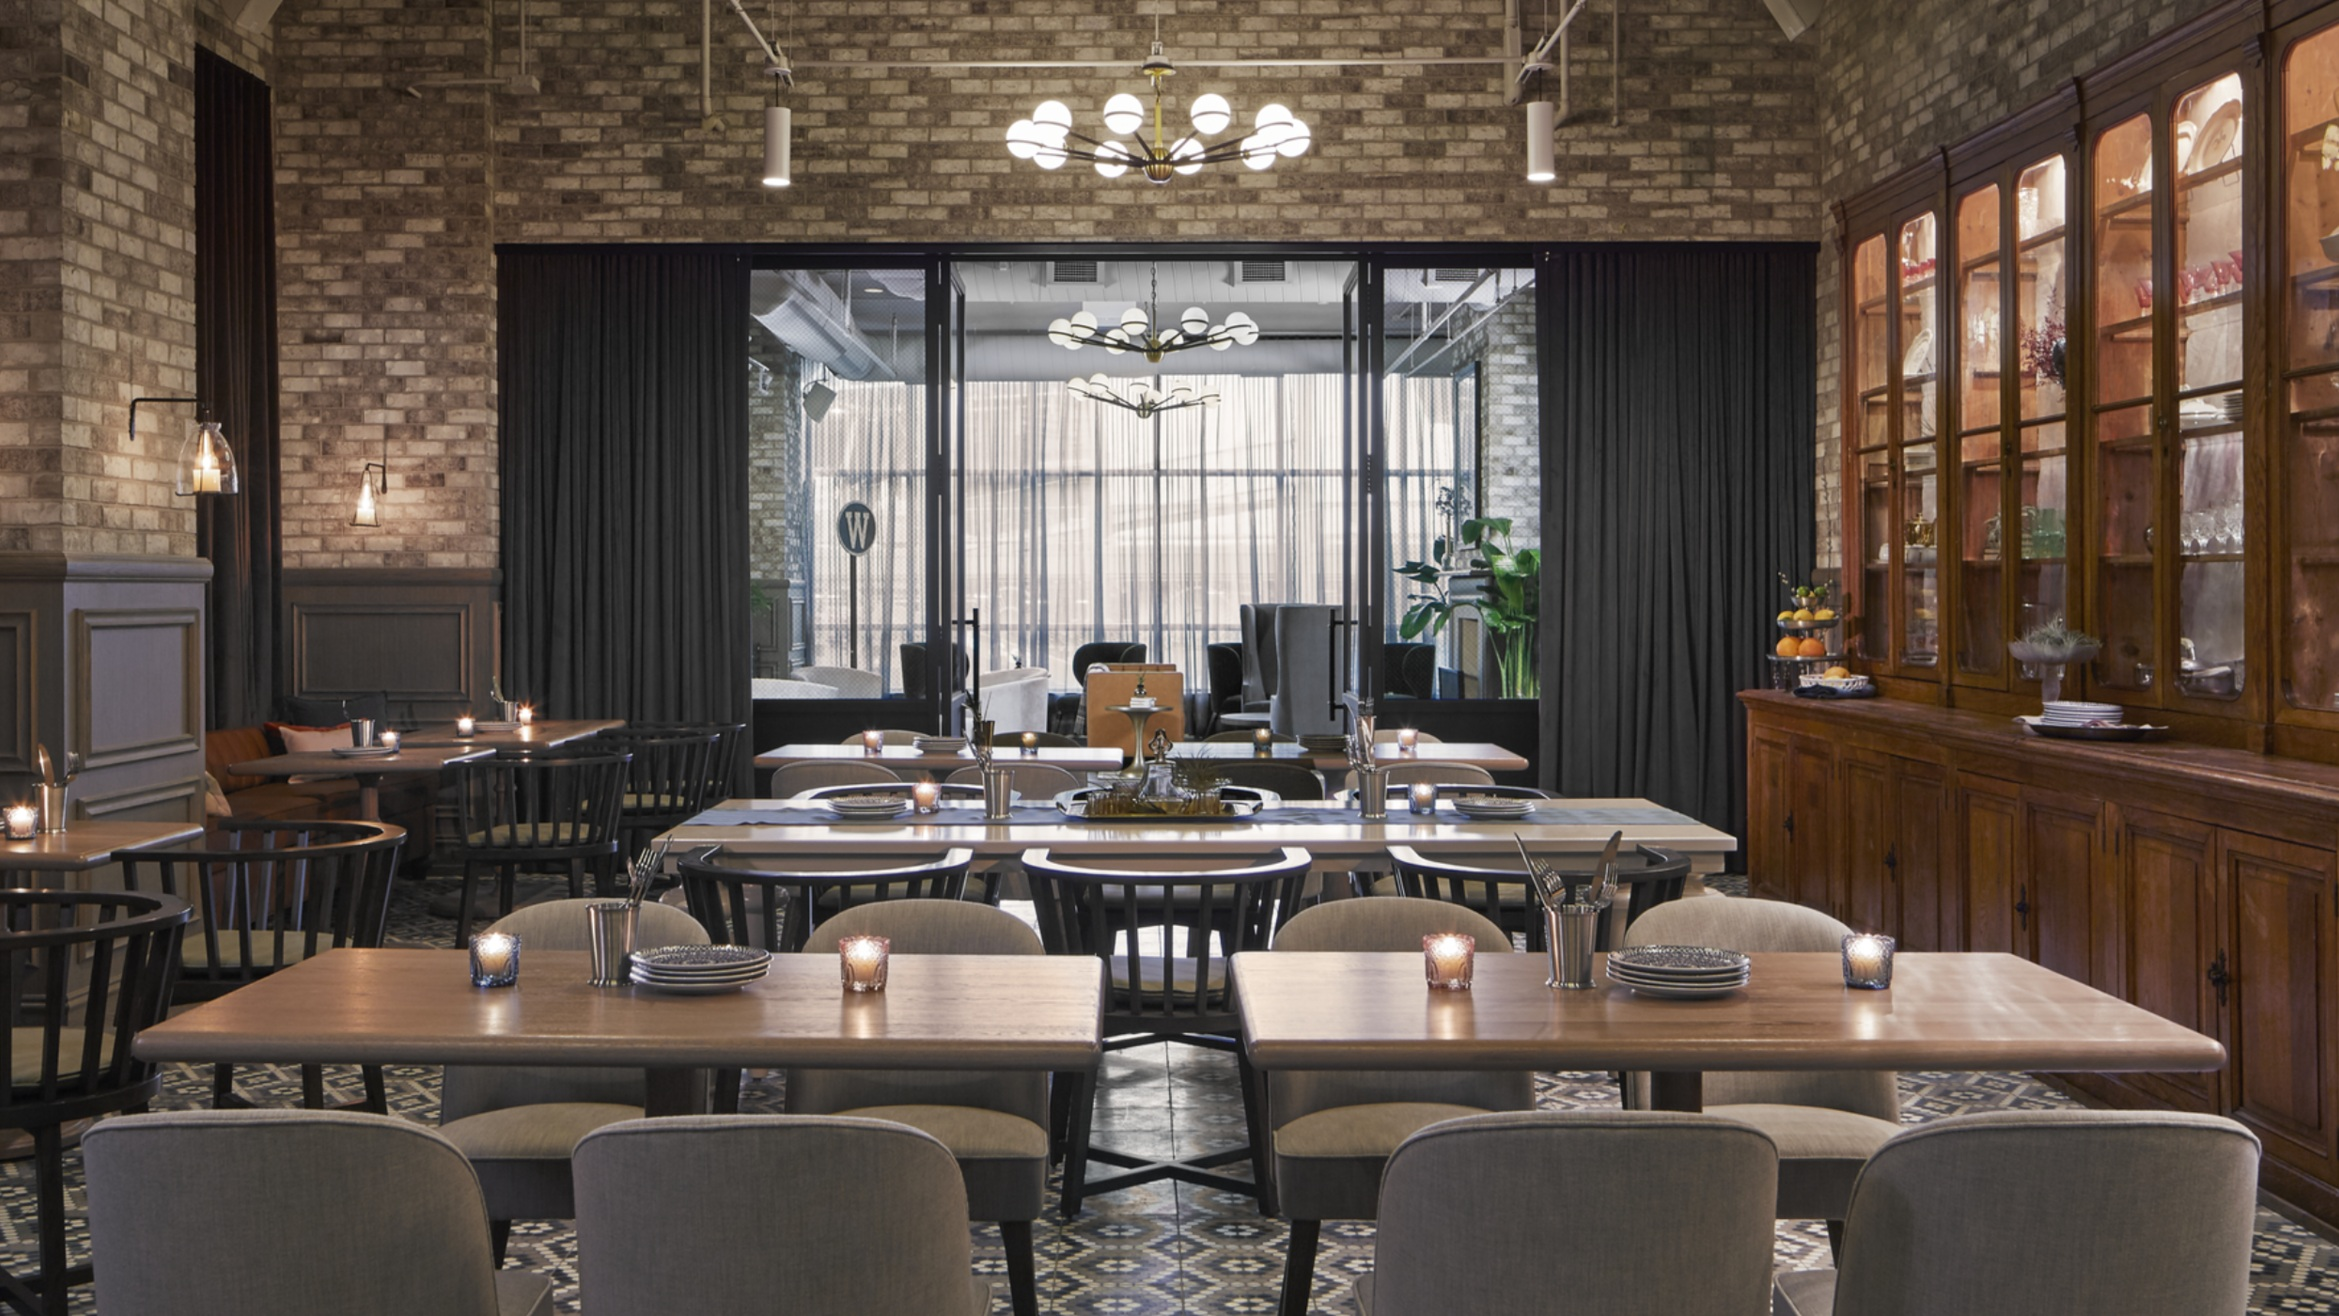 Hotel Zachary at Gallagher Way - THE NEW HUB OF CHICAGO'S NORTH SIDEHotel Zachary is a distinctive boutique hotel located in the heart of Chicago's Lakeview neighborhood.